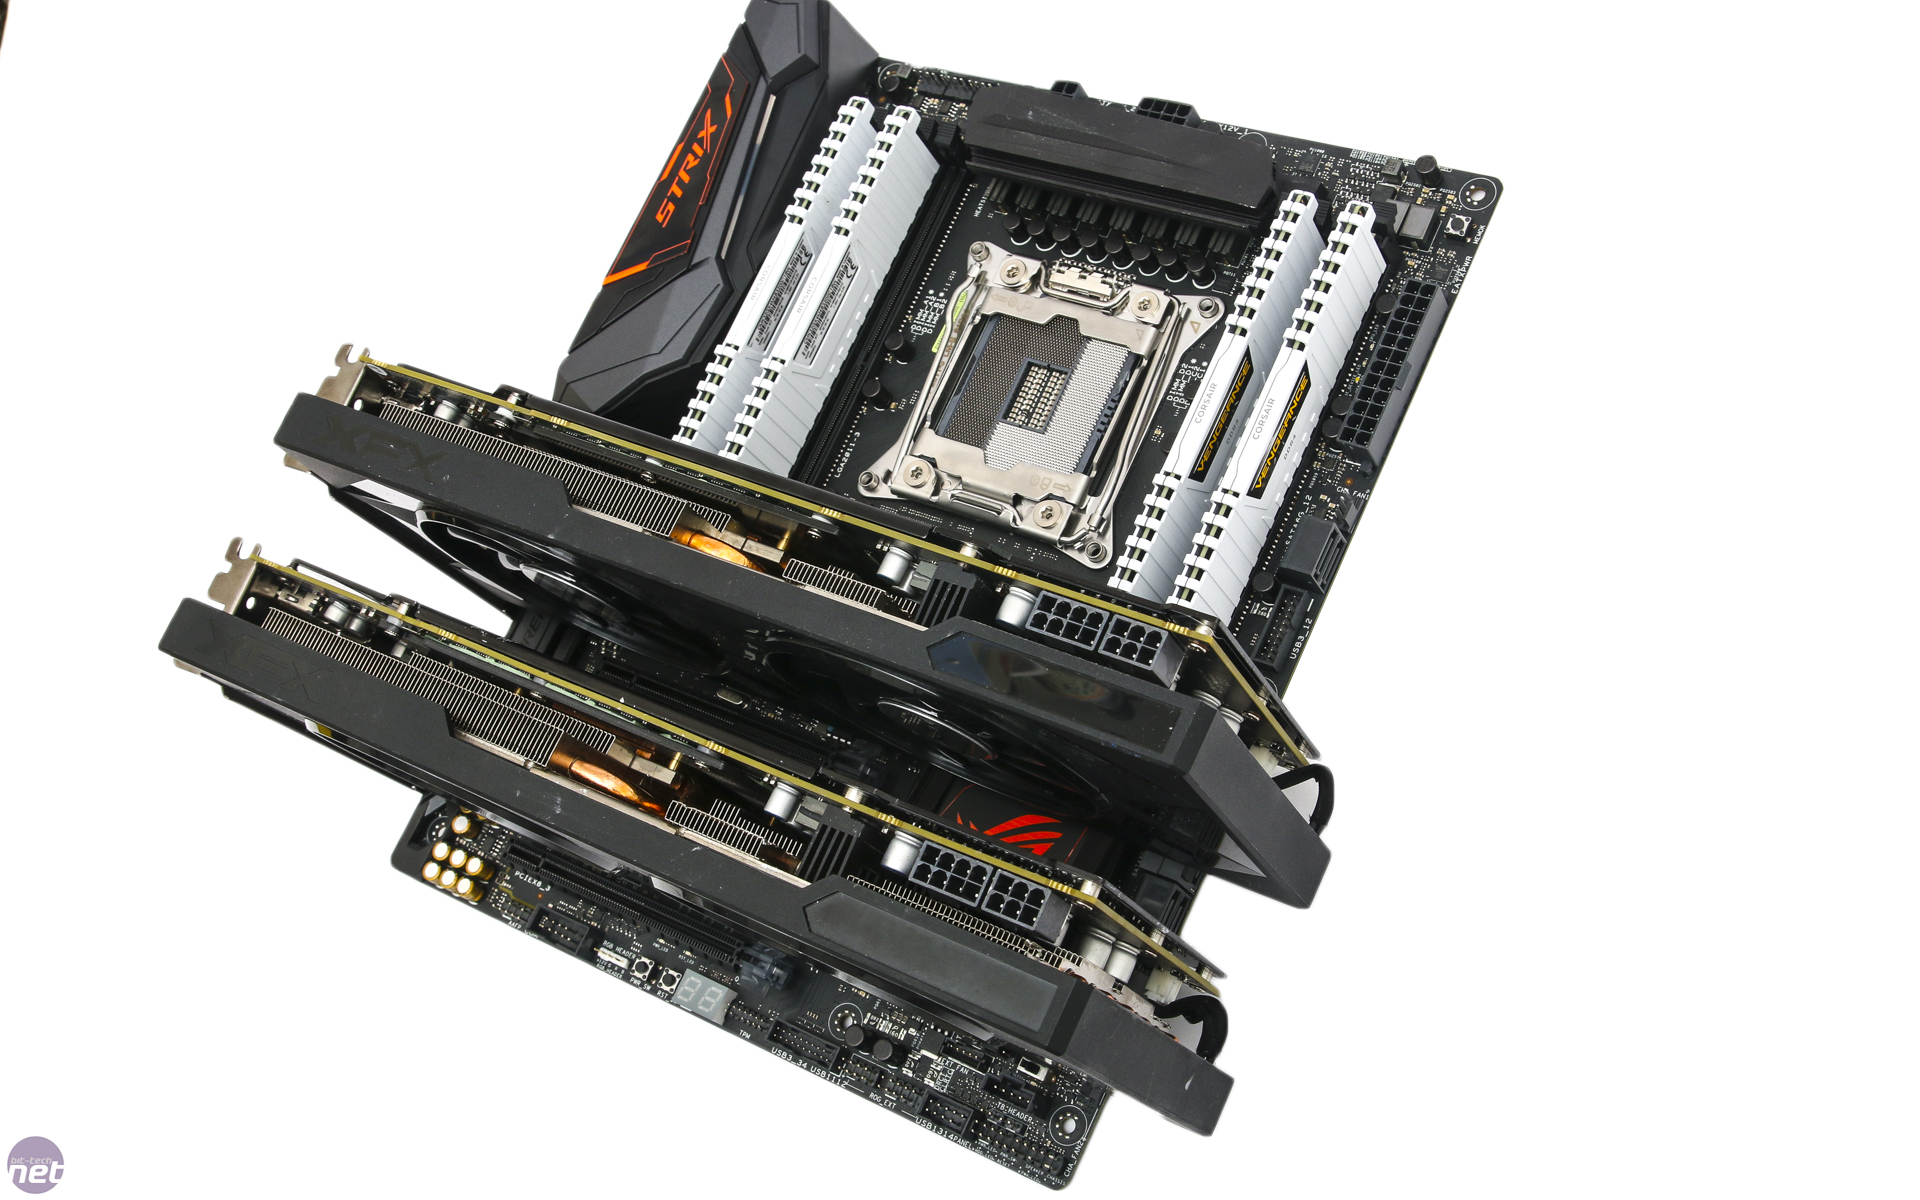 asus rog strix x99 gaming review bittechnet